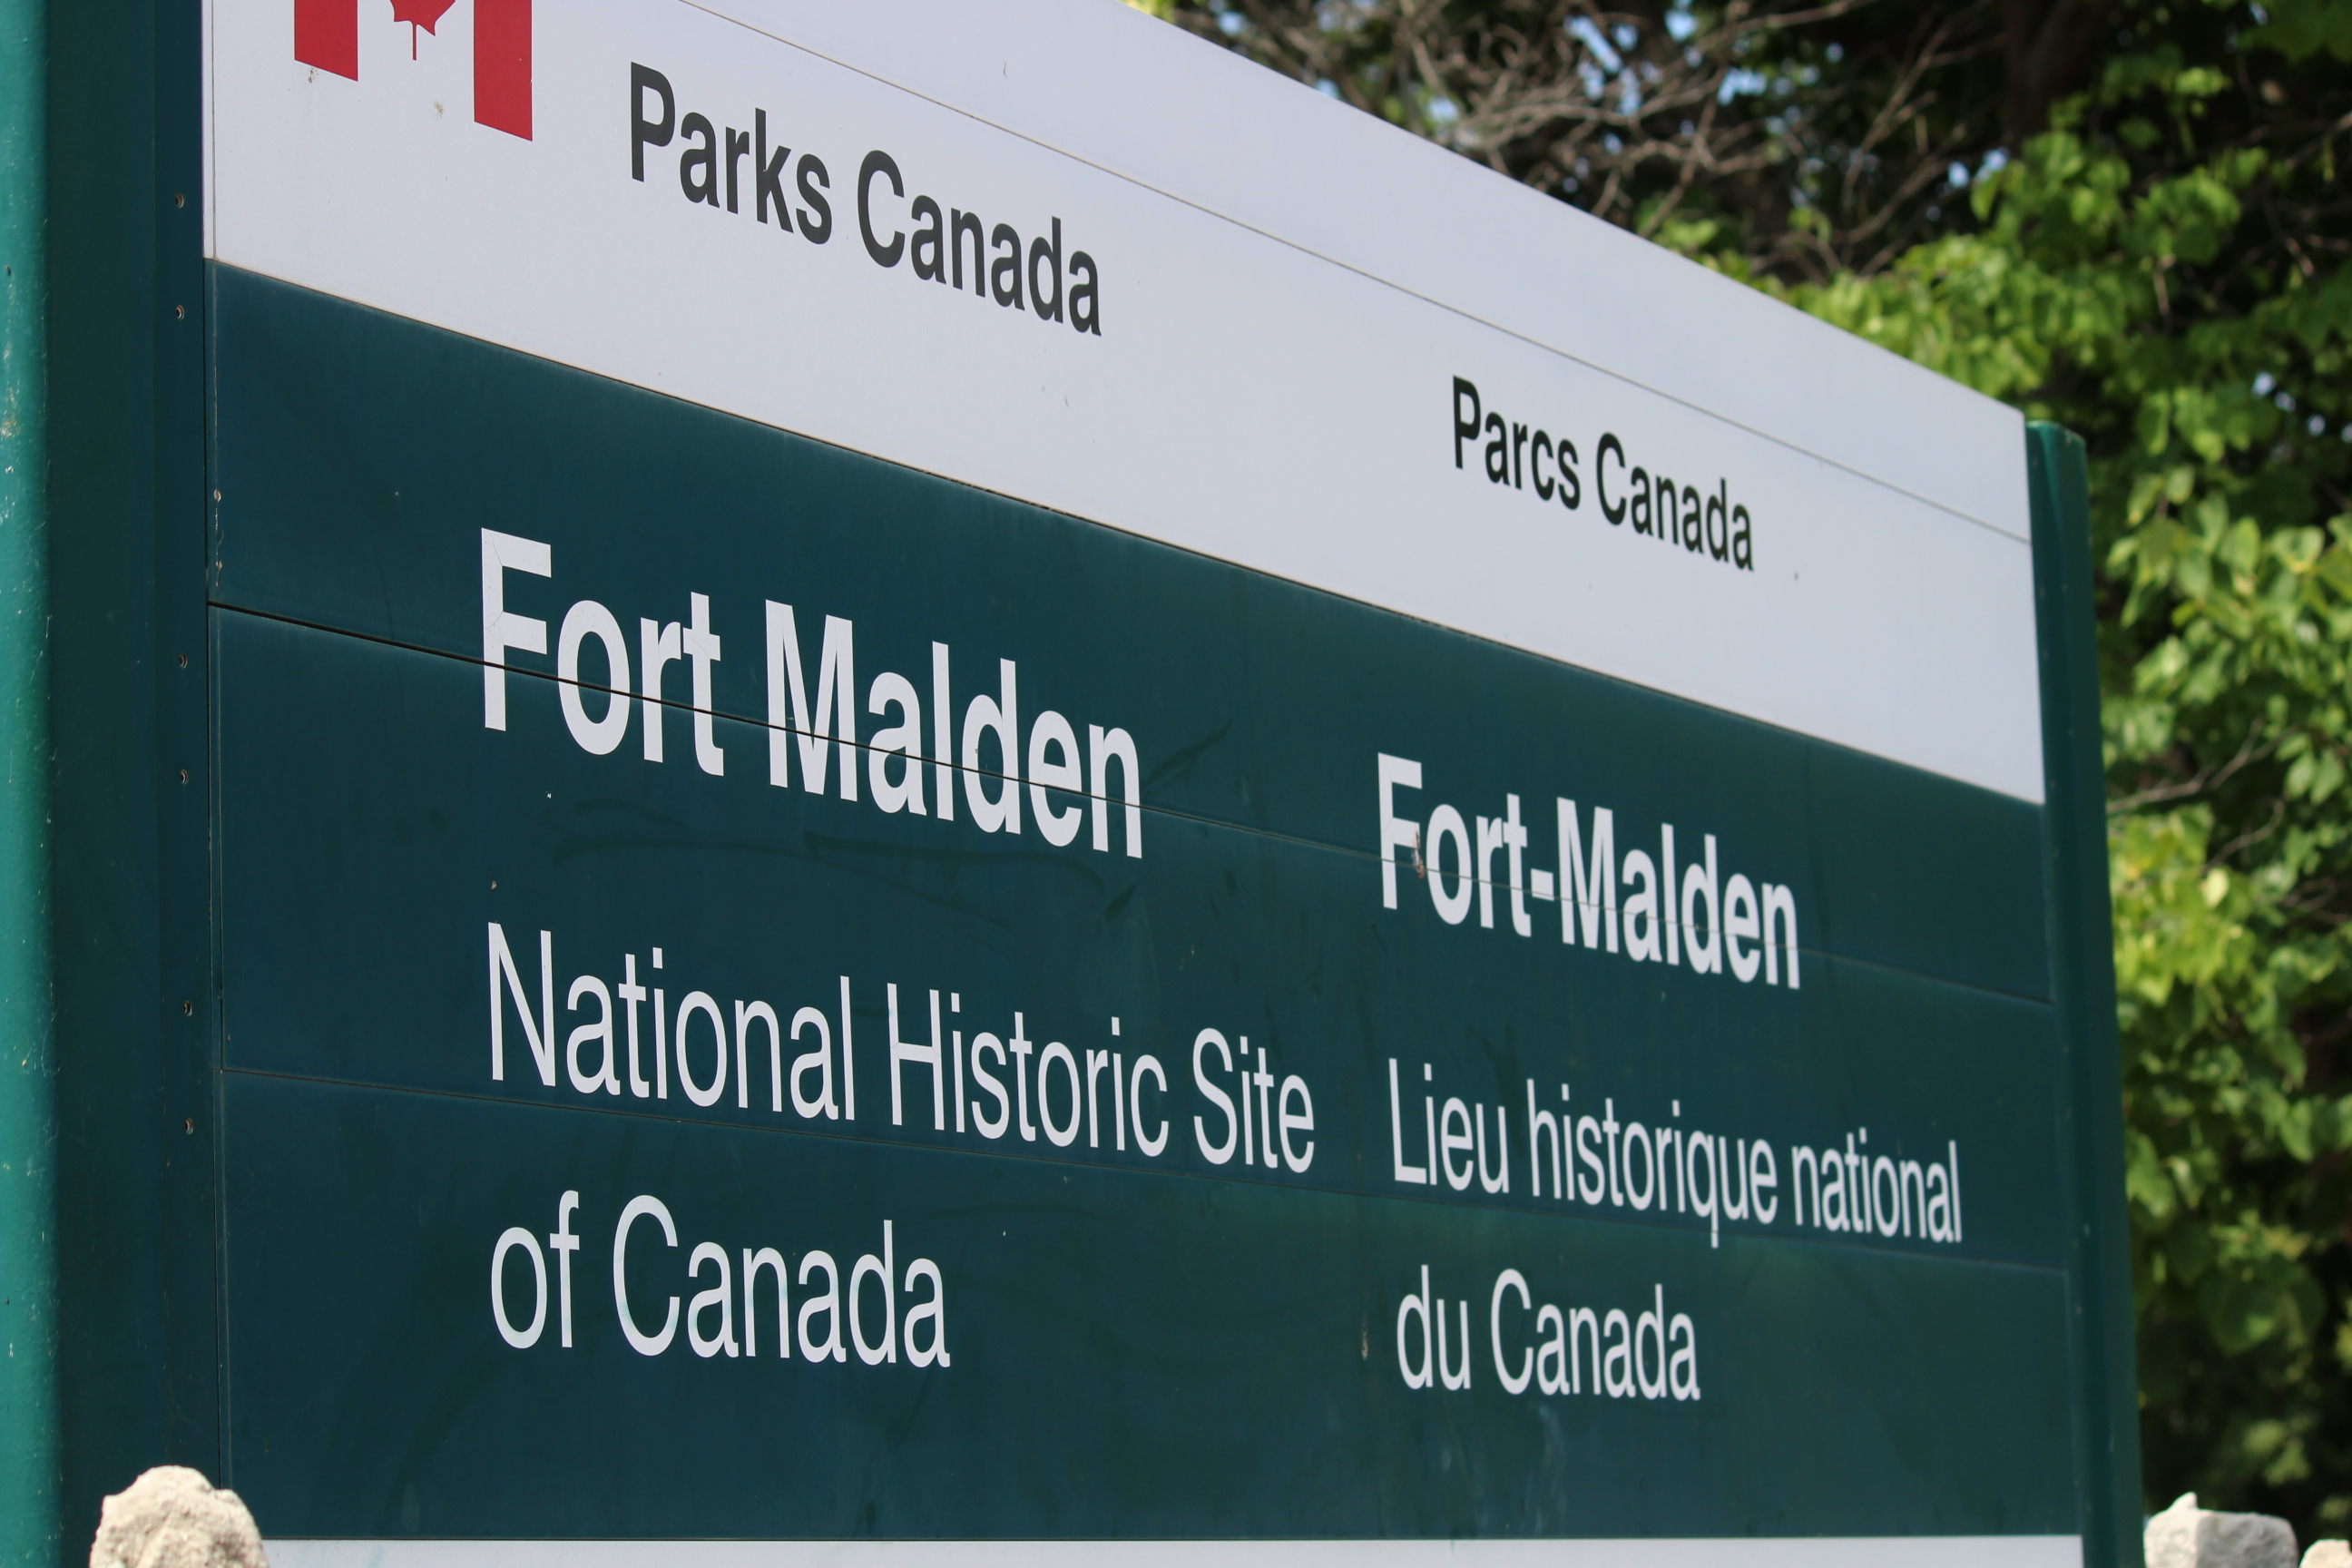 The sign in front of Fort Malden in Amherstburg. (Photo by Adelle Loiselle.)